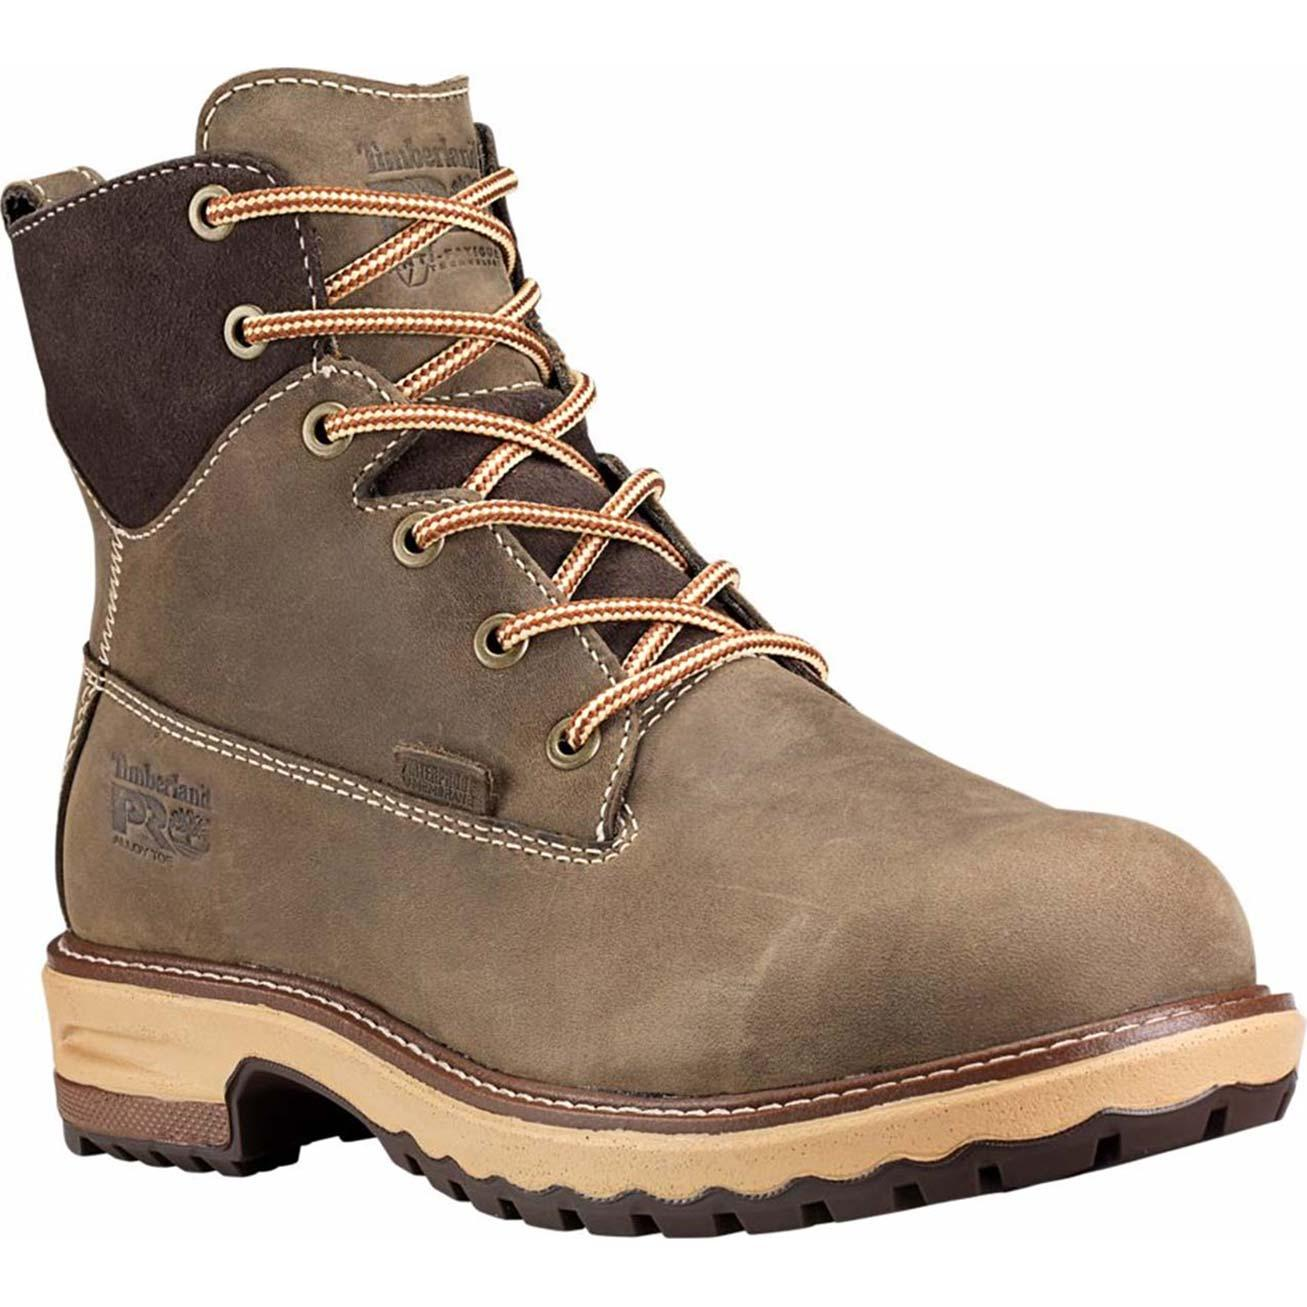 c5da5f7228d Timberland PRO Hightower Women's Alloy Toe Waterproof Work Boot